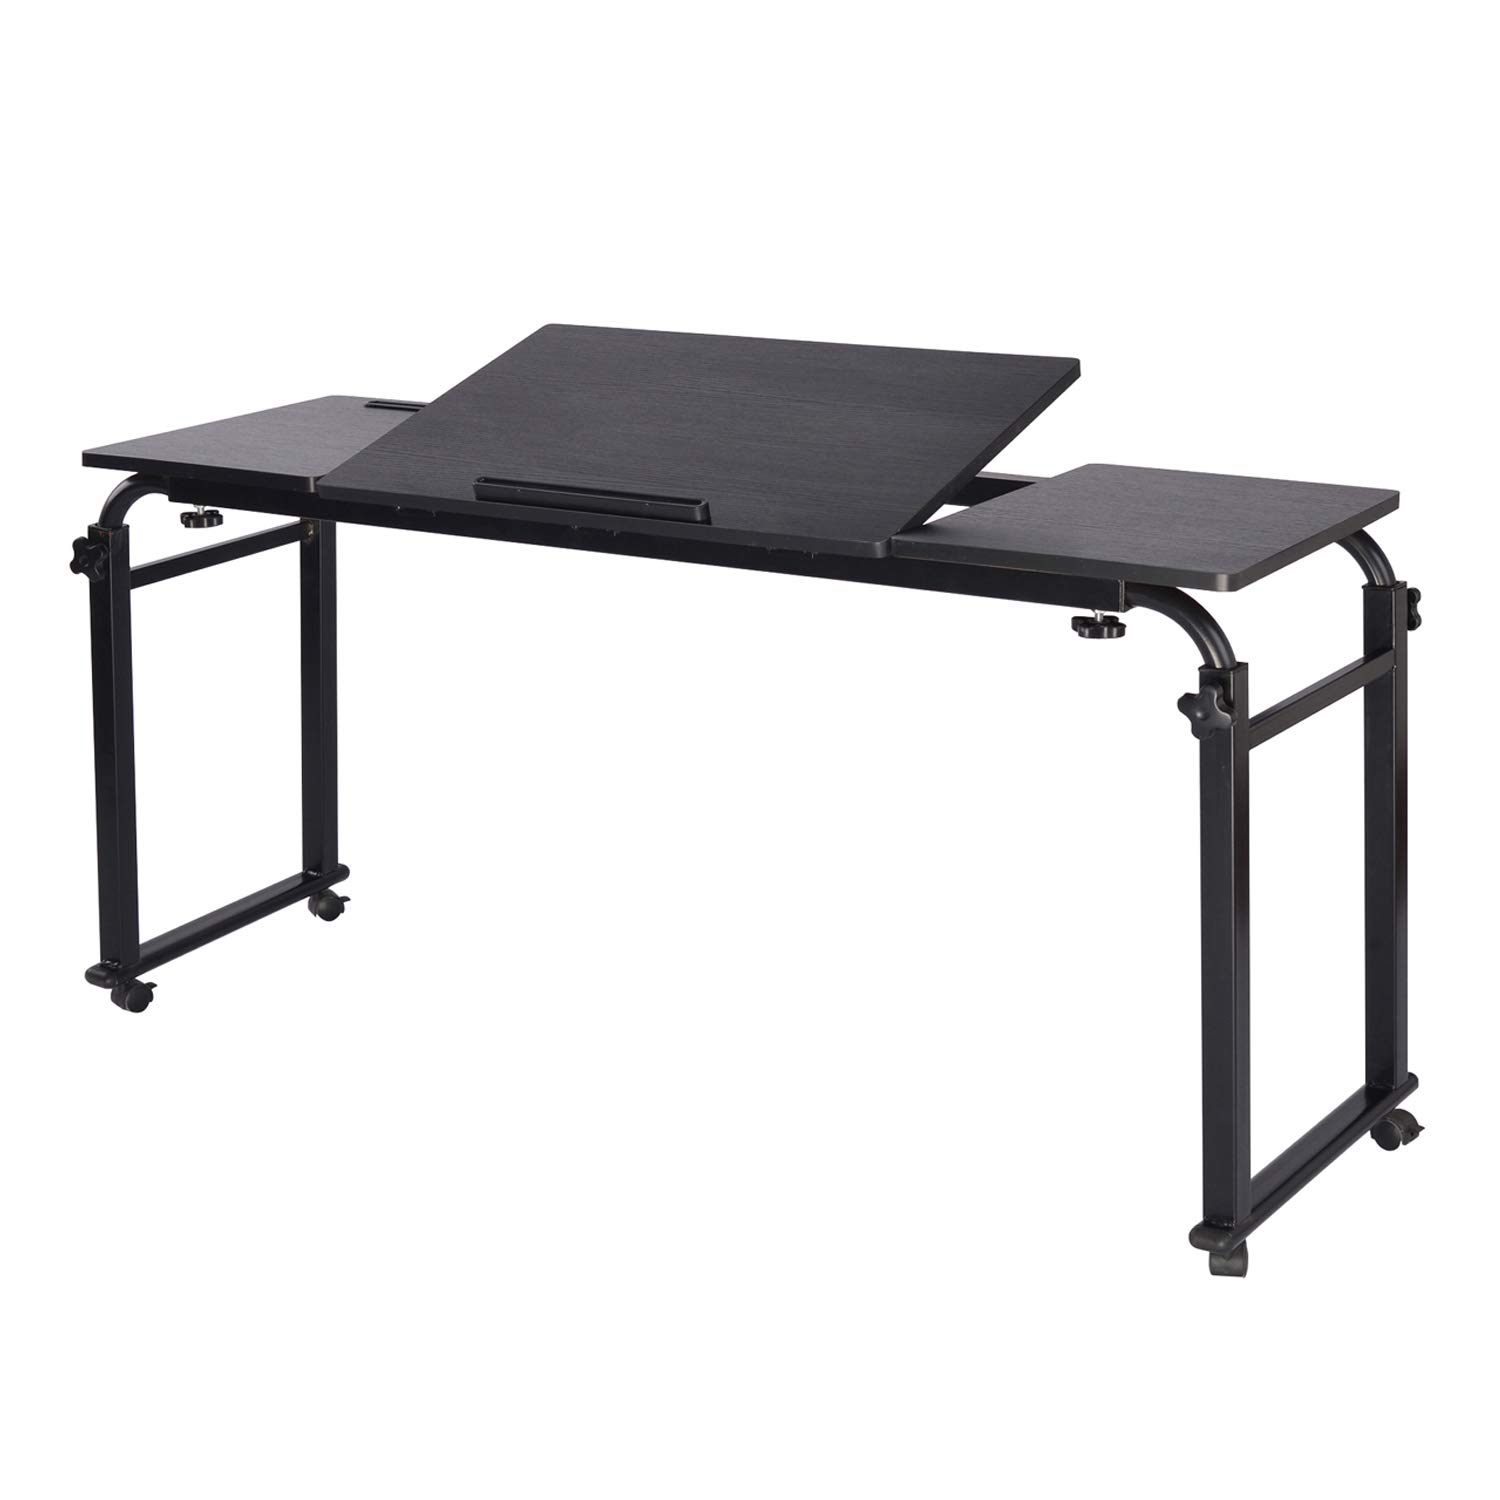 Overbed Table with Wheels Mobile Laptop Desk Cart Computer Table Over The Bed Table Adjustable Height and Length with Tilt Stand Board for Hospital and Home by KOMOREBI